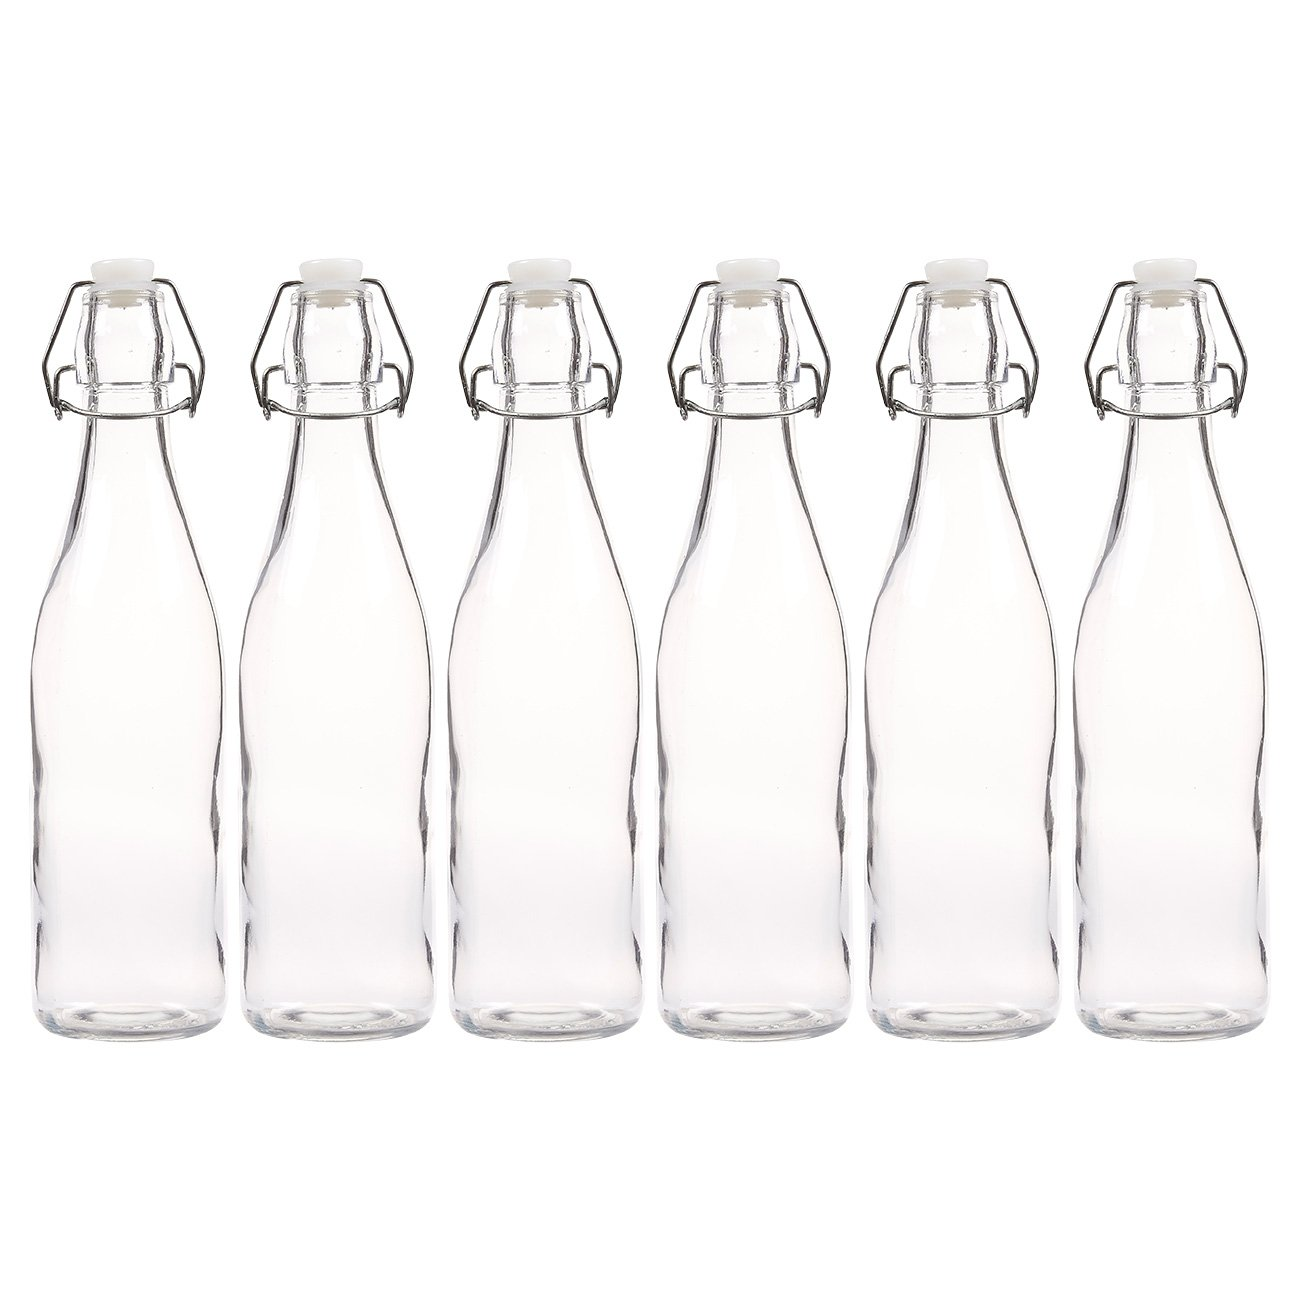 6-Pack Swing-Top Bottles - Resealable, Flip Top Glass Bottles Set for Home Brewing, Craft Beer Supplies, Clear - 16.9 Oz